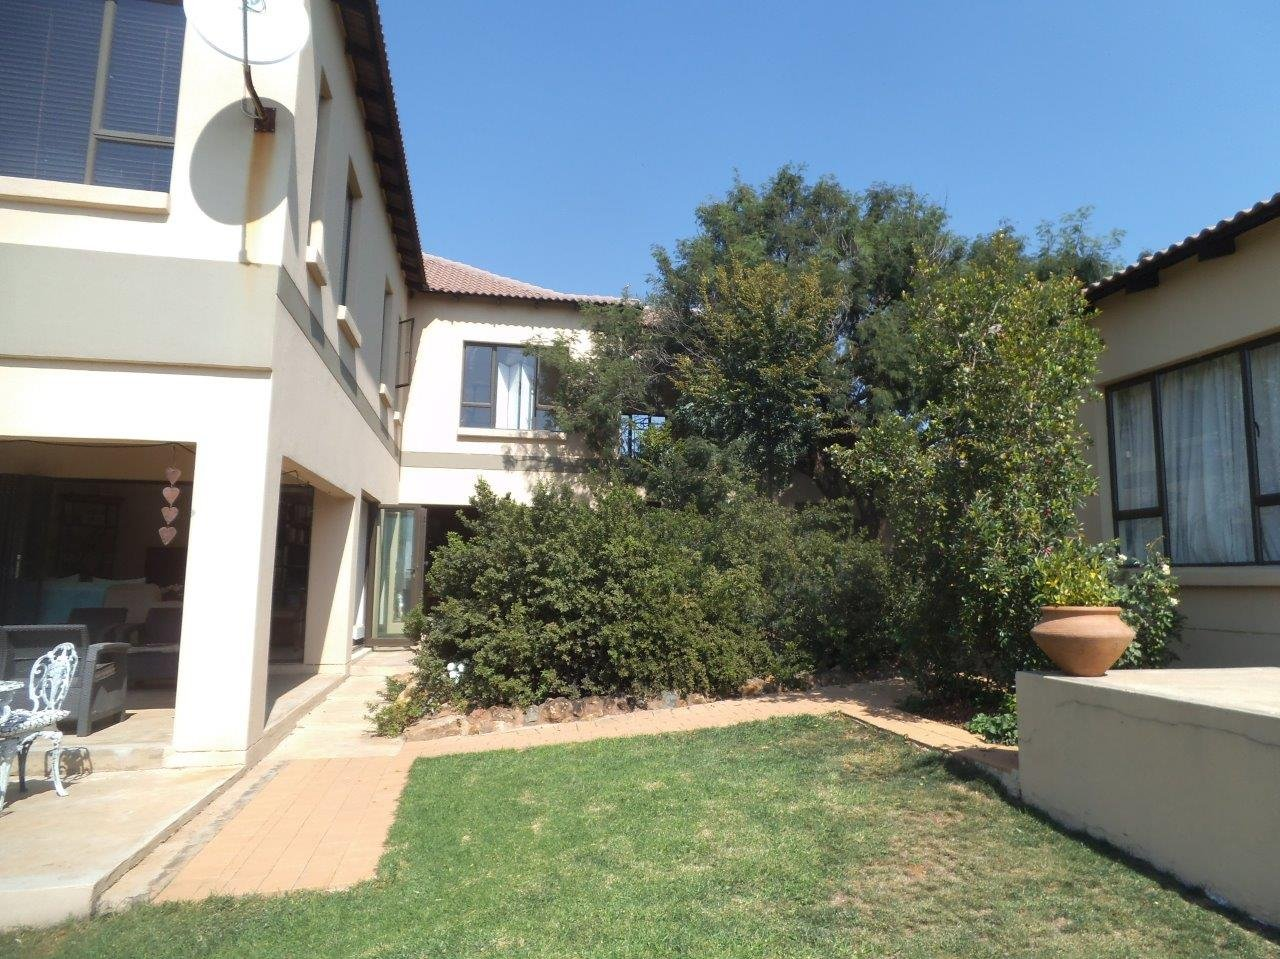 Alberton, Meyersdal Property  | Houses For Sale Meyersdal, Meyersdal, House 4 bedrooms property for sale Price:6,450,000